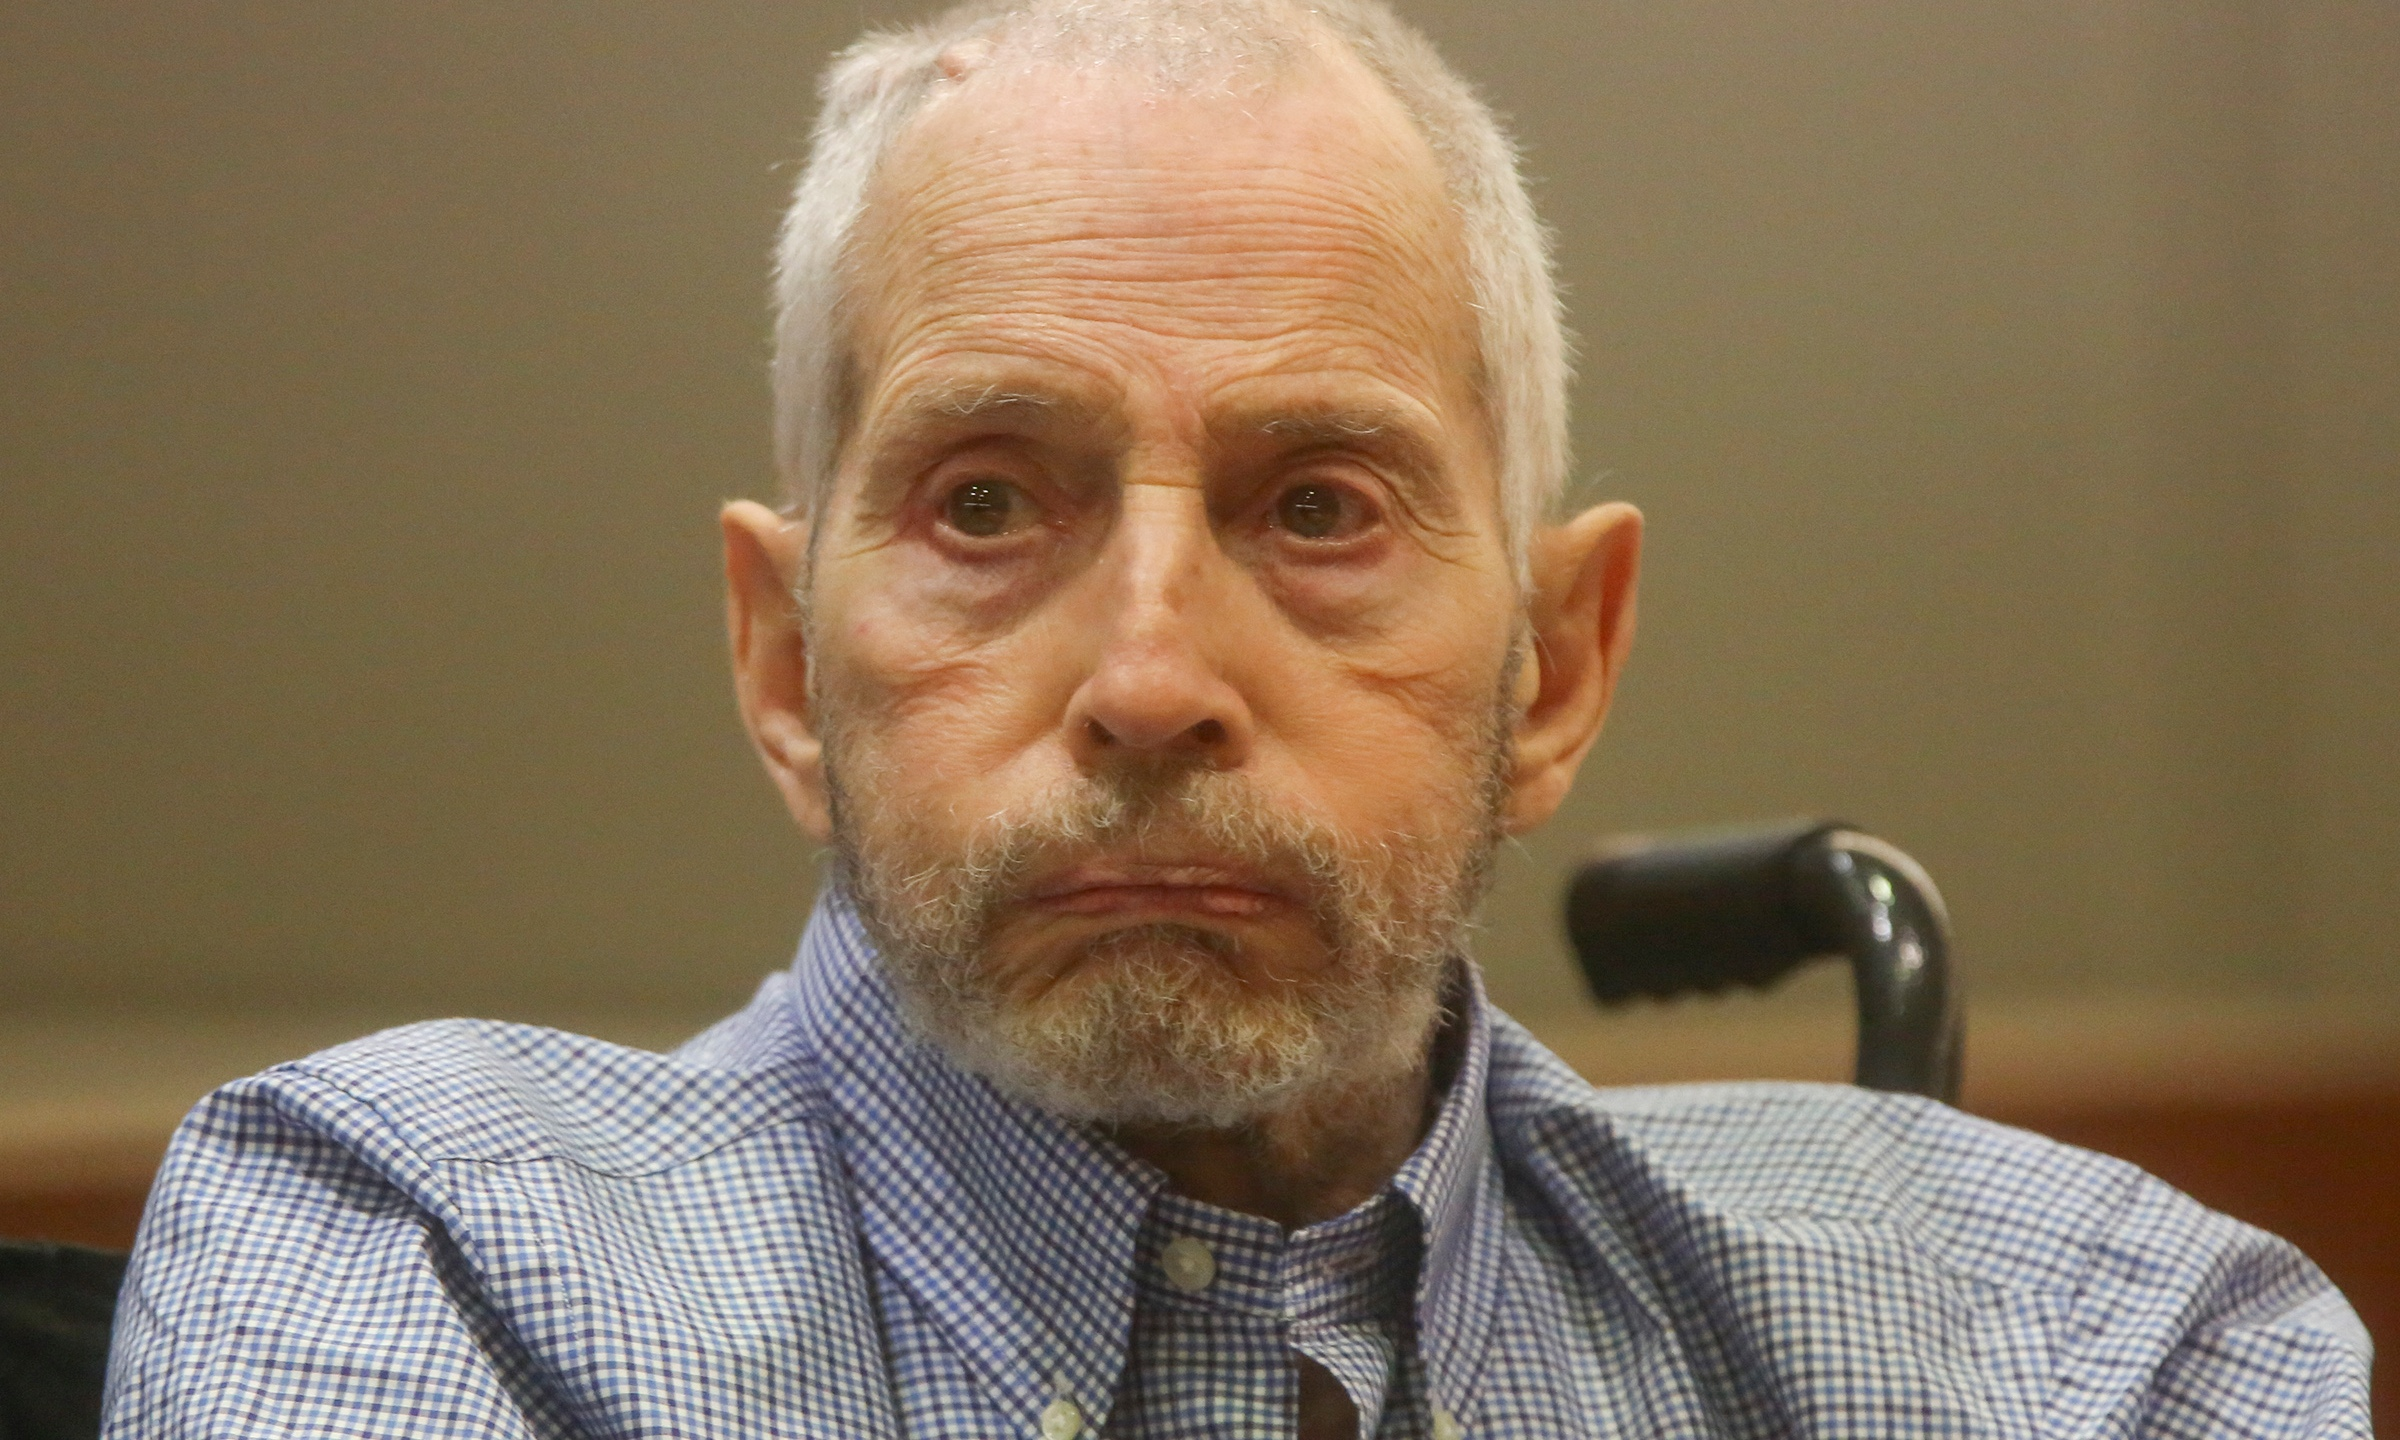 New York real estate scion Robert Durst appears in the Los Angeles Superior Court Airport Branch for a pre-trial motions hearing involving witnesses that are expected to testify before the trial on January 6, 2017. (Credit: MARK BOSTER/AFP/Getty Images)